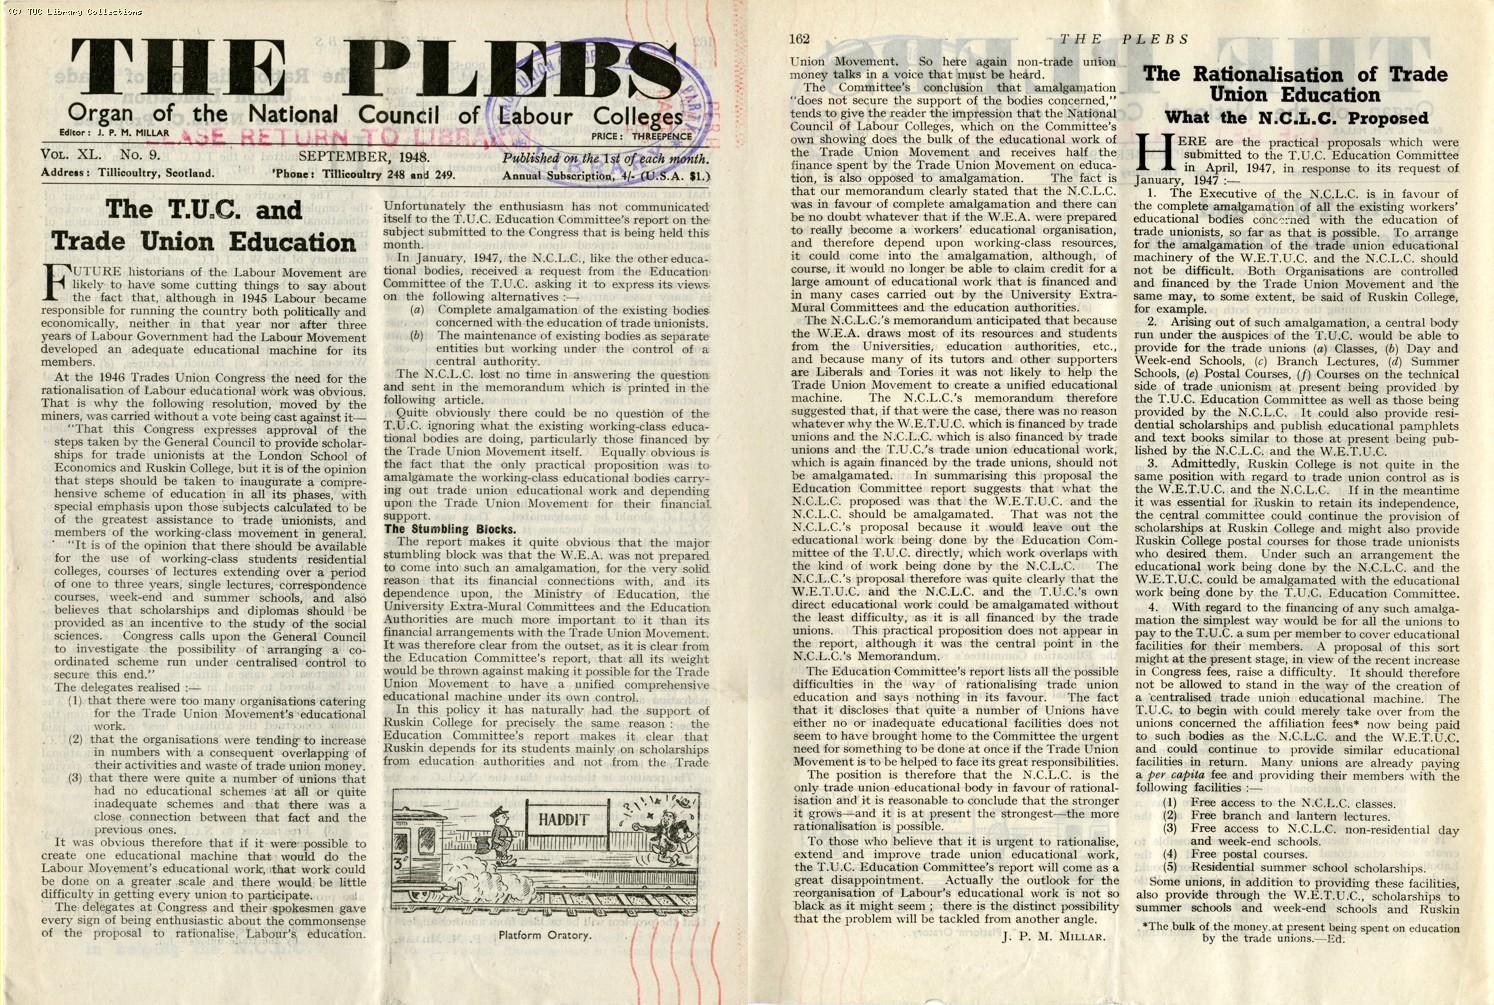 The Plebs, 1948